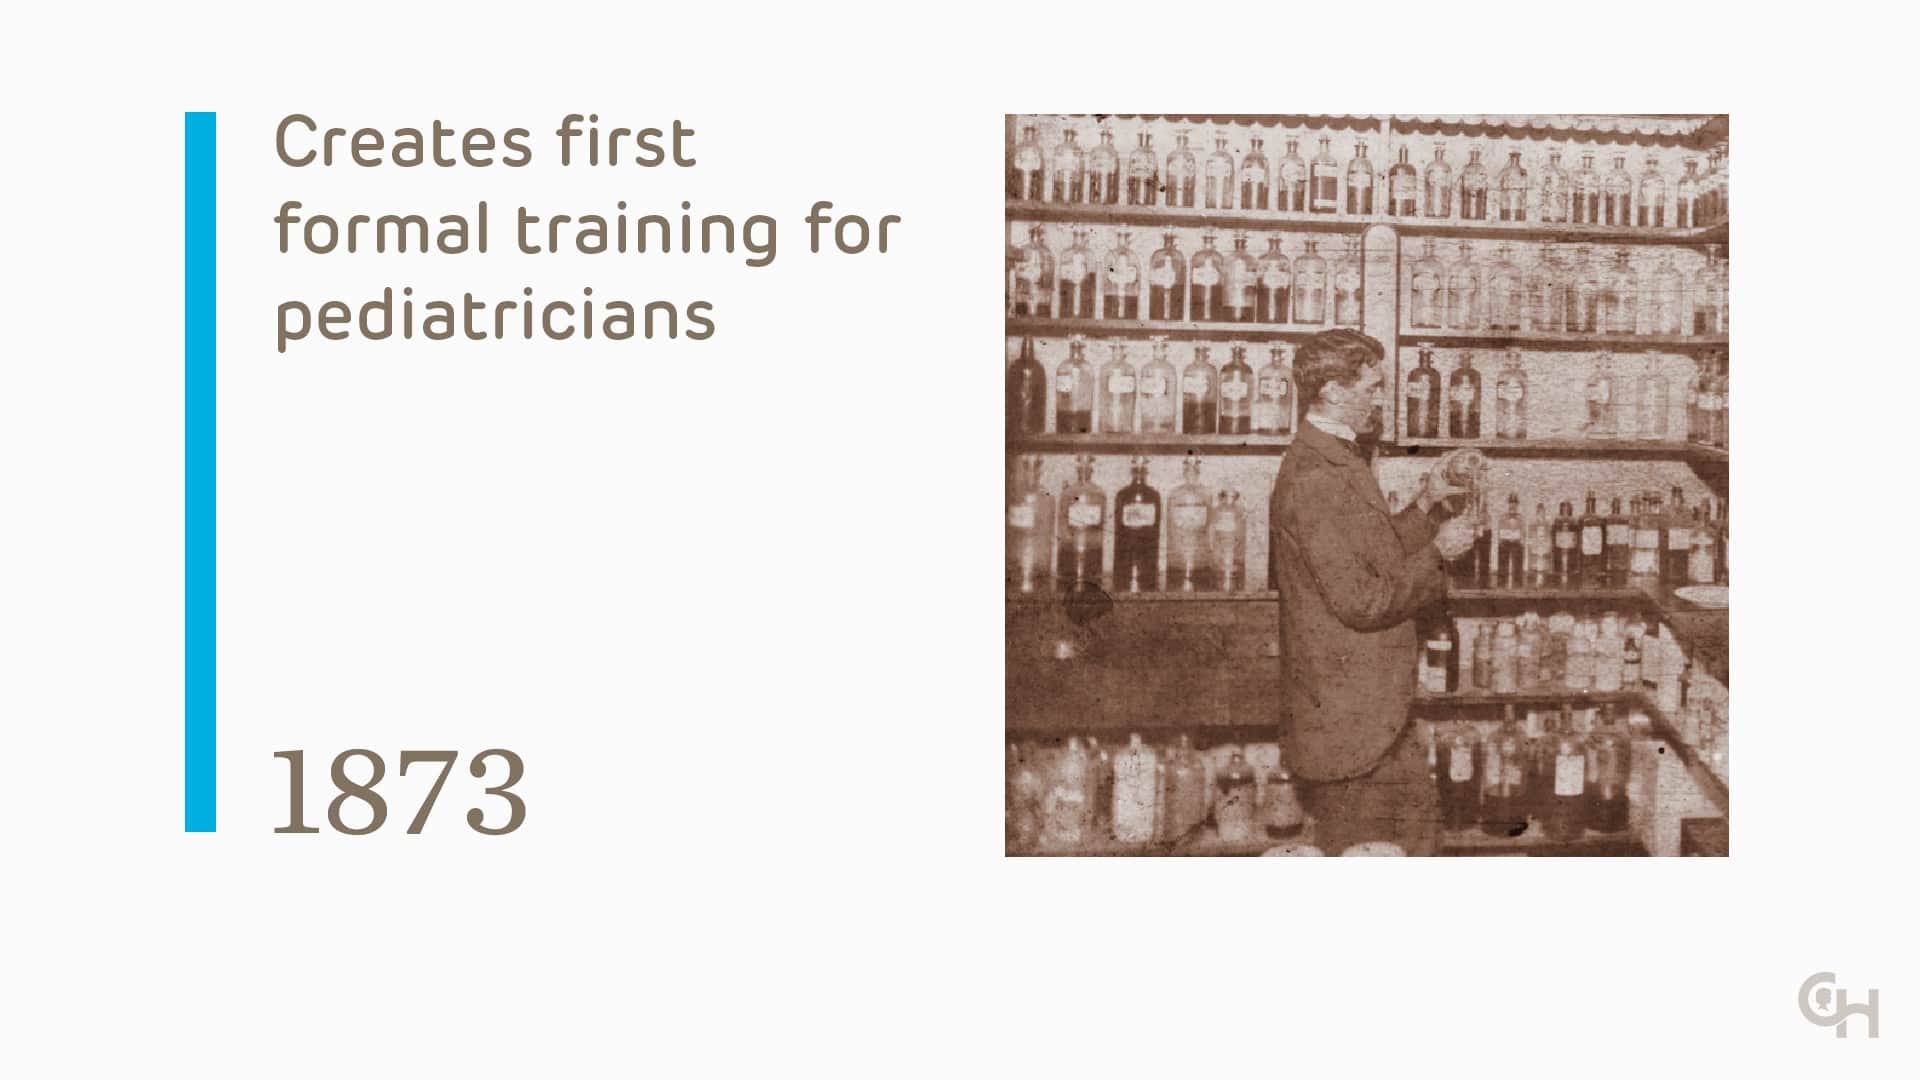 Creates first formal training for pediatricians - 1873